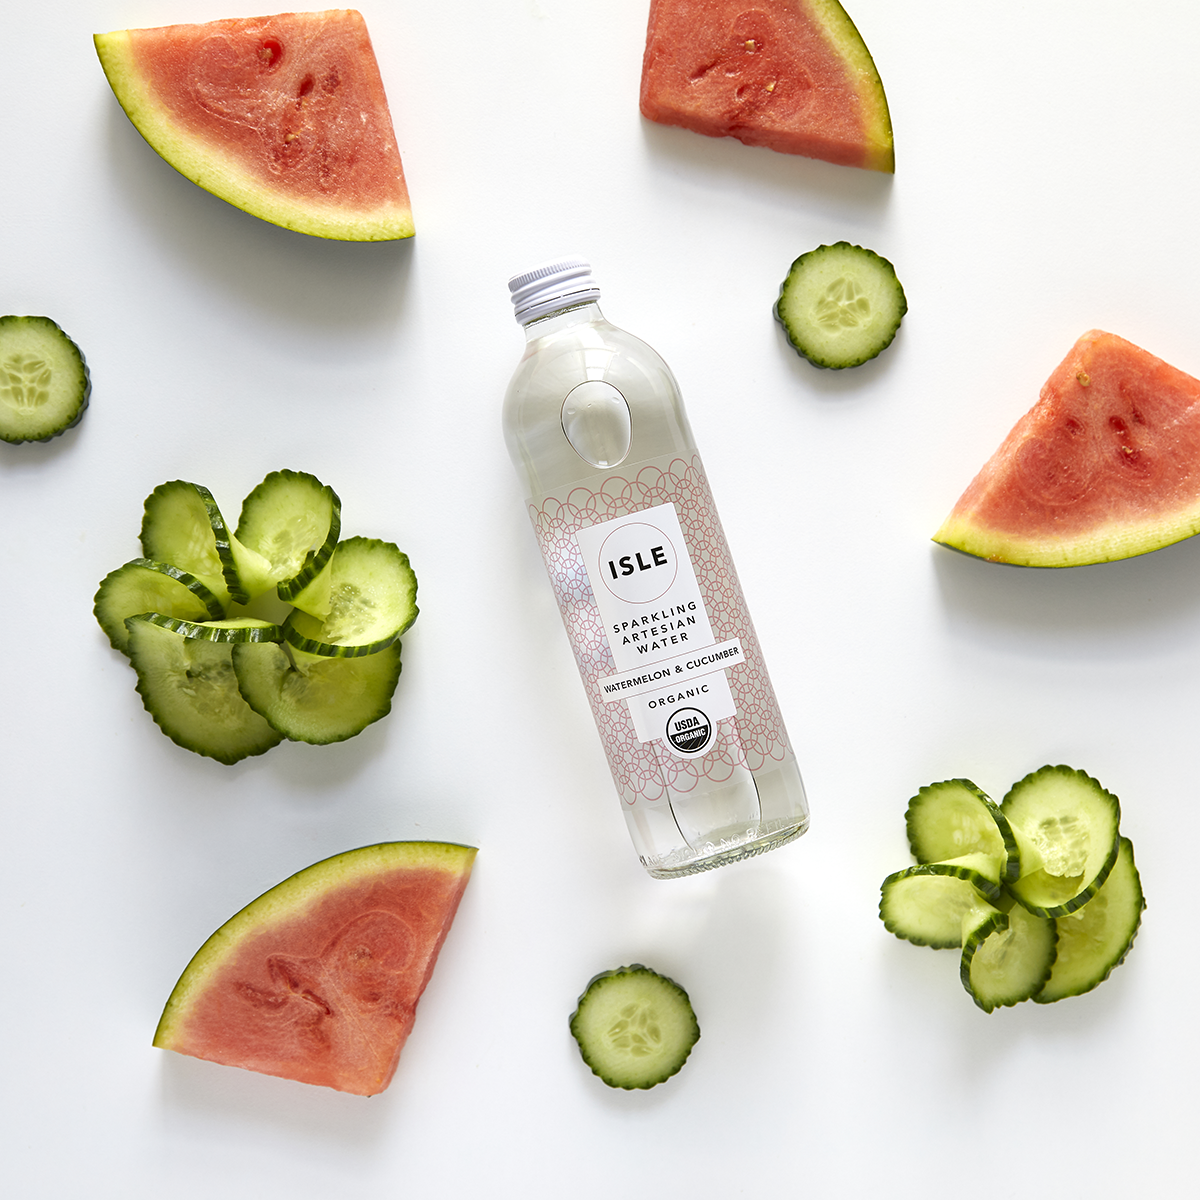 Watermelon + Cucumber - Enjoy the refreshing delights of watermelon + cucumber extracts lightly infused in sparkling artesian spring water.